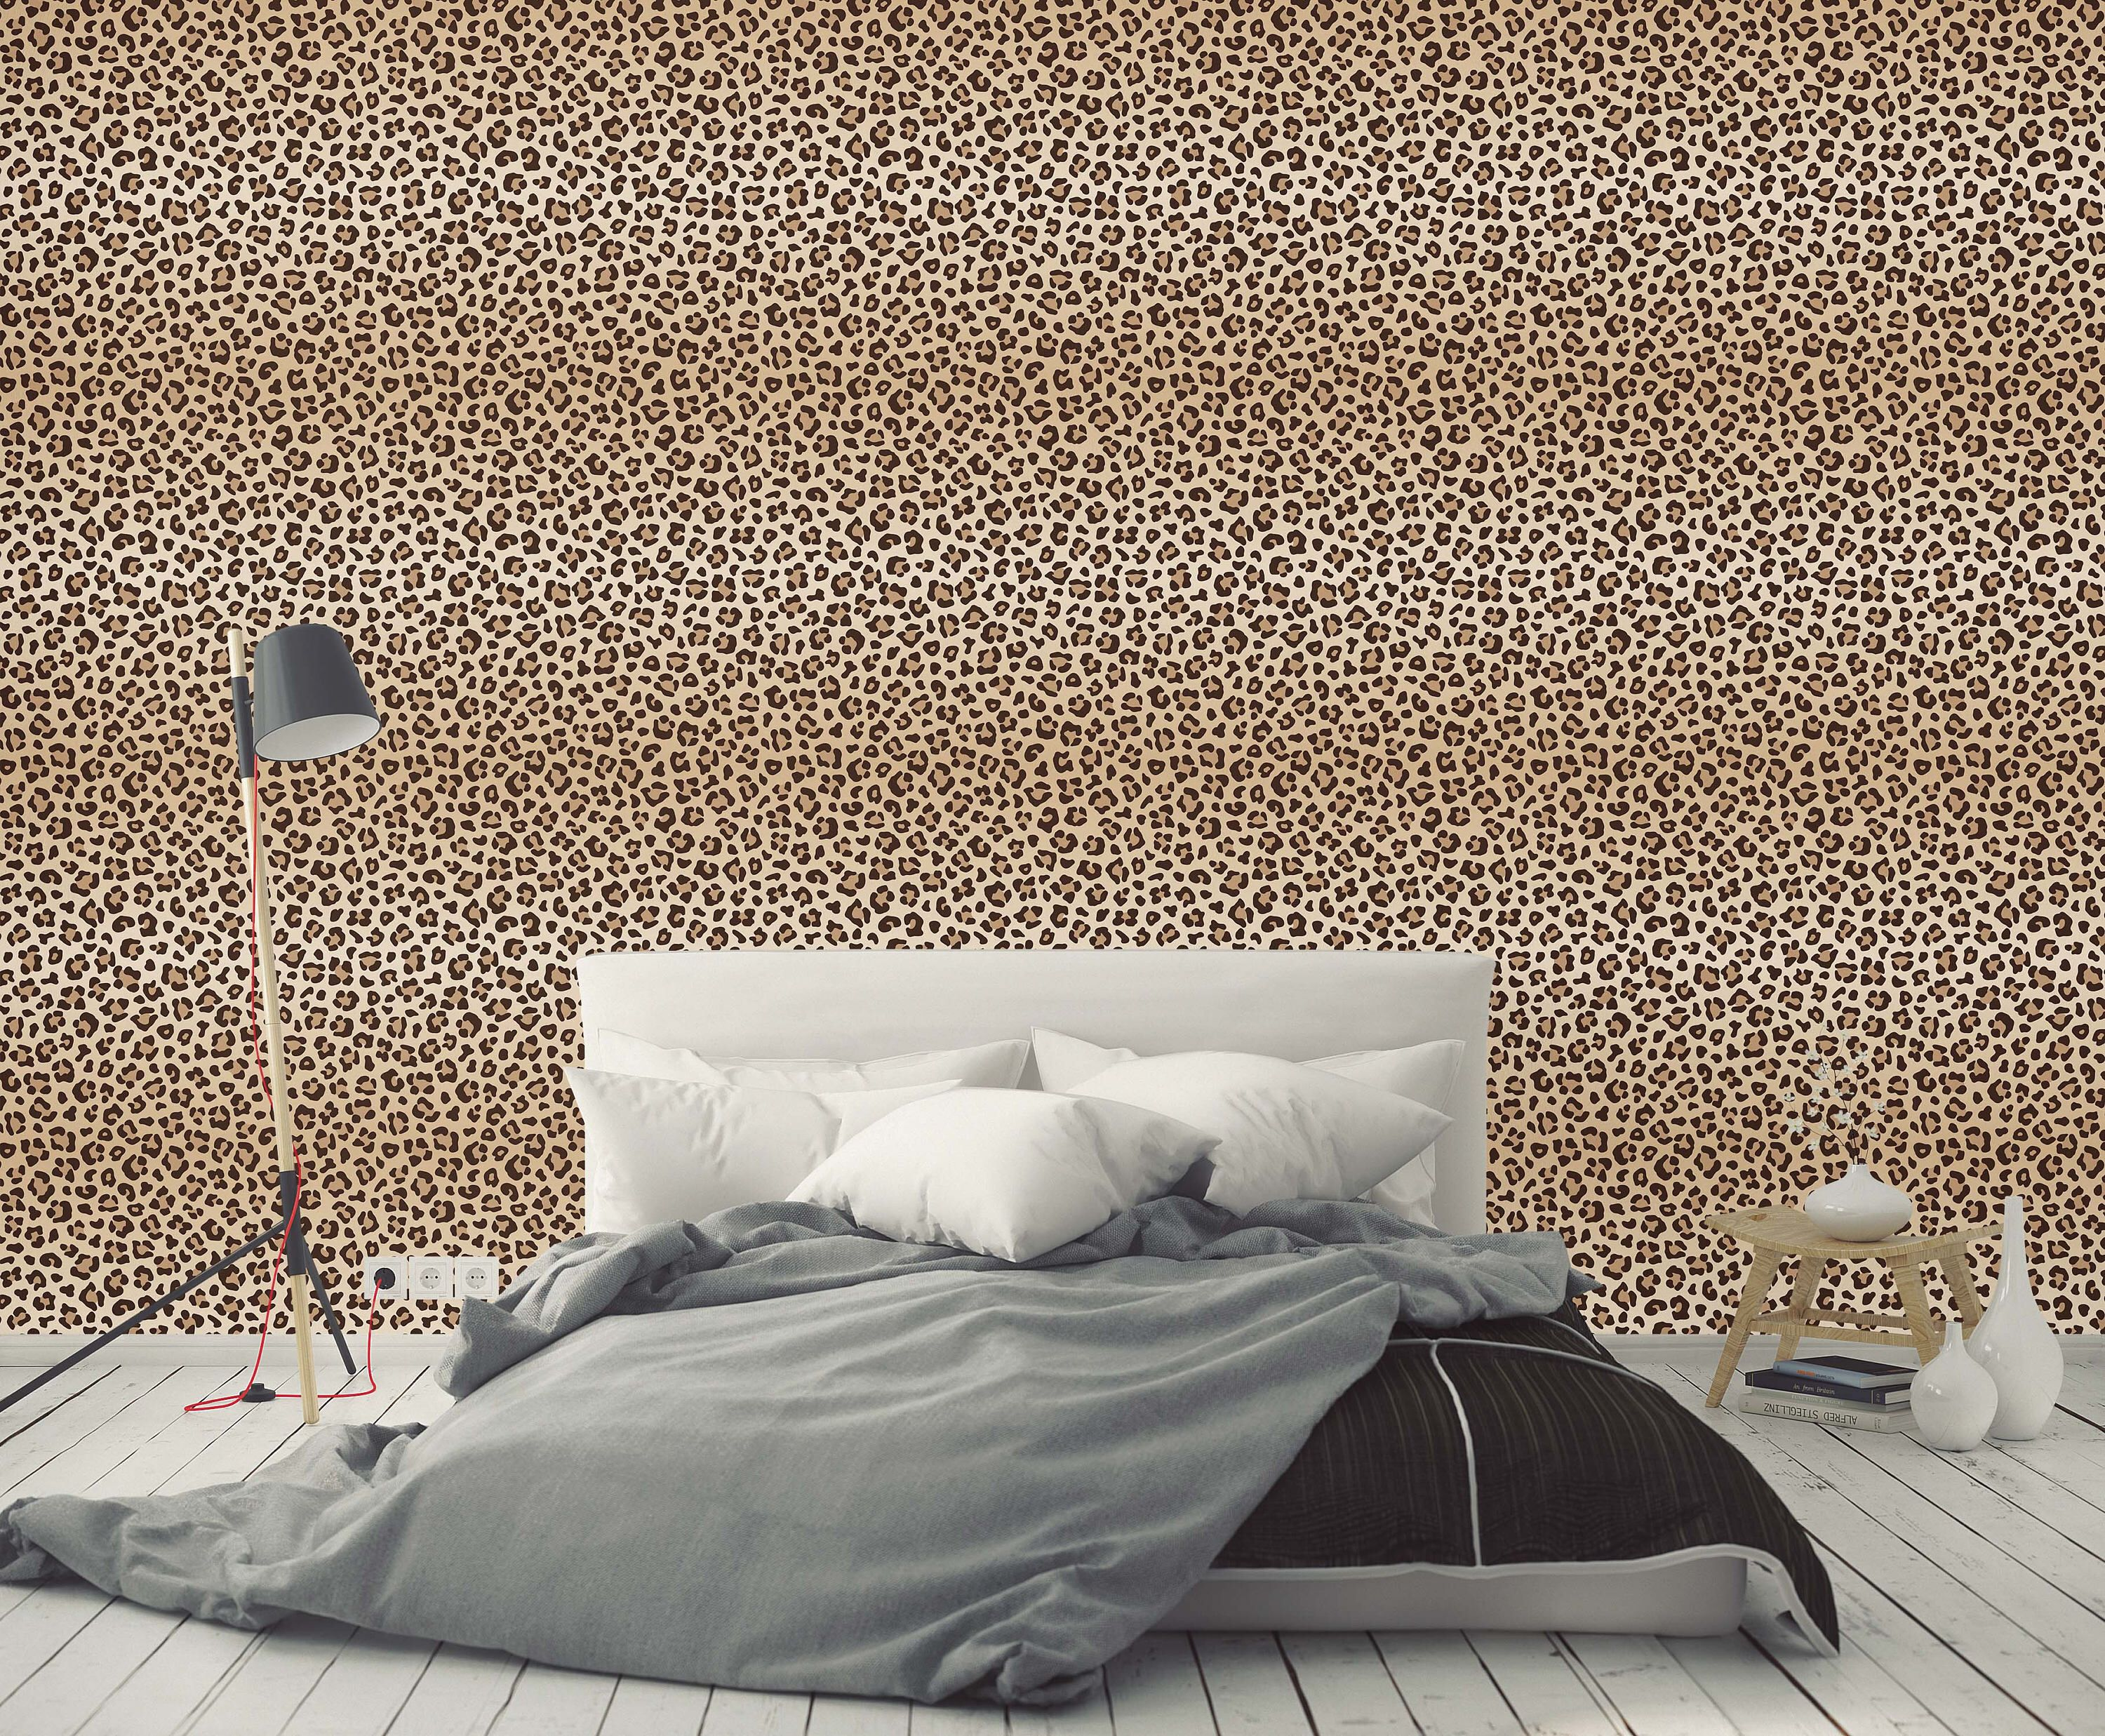 Leopard Print Spots Removable Wallpaper Self Adhesive Wall Paper Vinyl With Animal Pattern Peel And Stick Application Cc151 Removable Wallpaper Vinyl Paper Wall Coverings